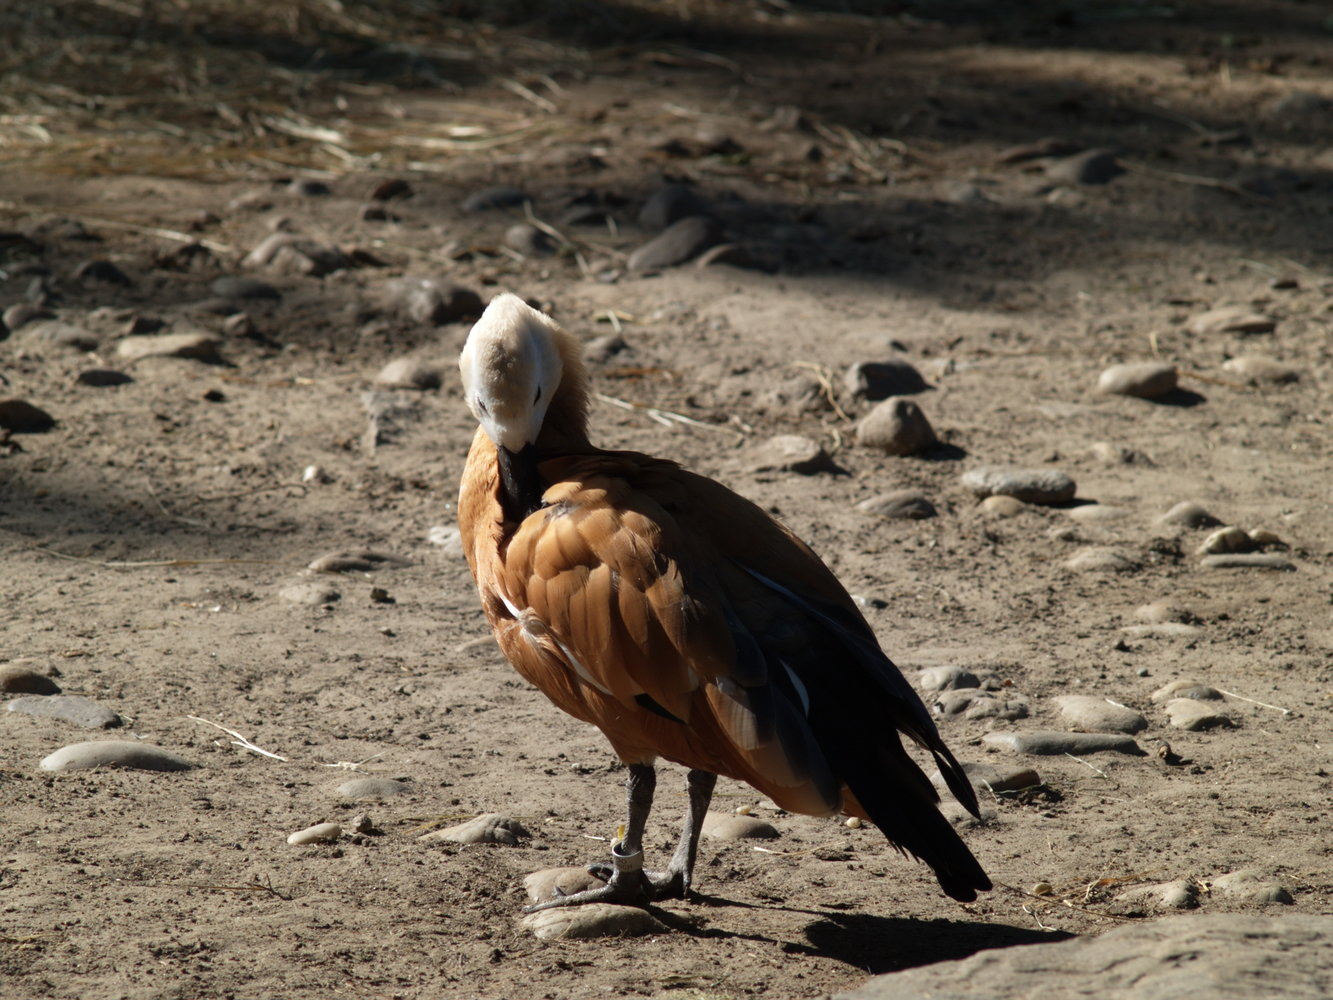 Jupiter-11 135mm f4 M39 black zebra-6635